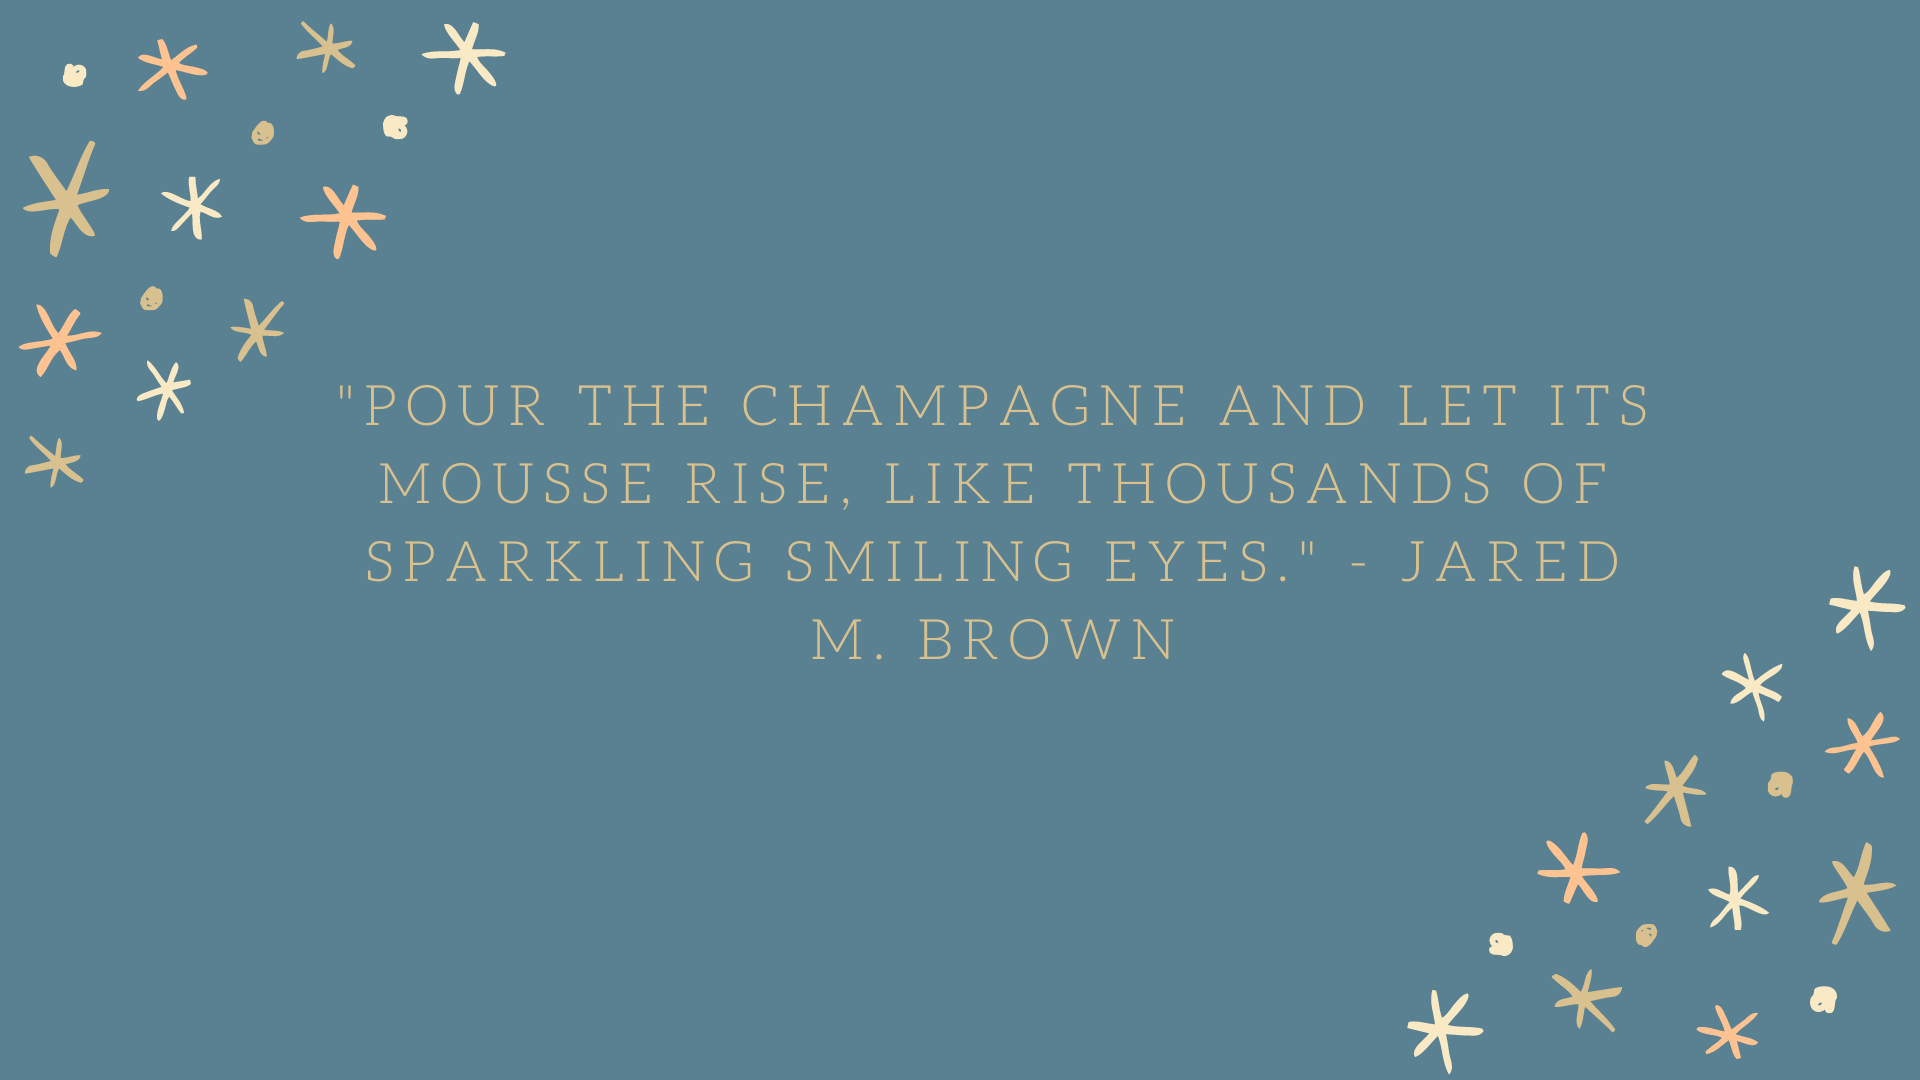 Pour the champagne and let its mousse rise, like thousands of sparkling smiling eyes. | Jared M. Brown